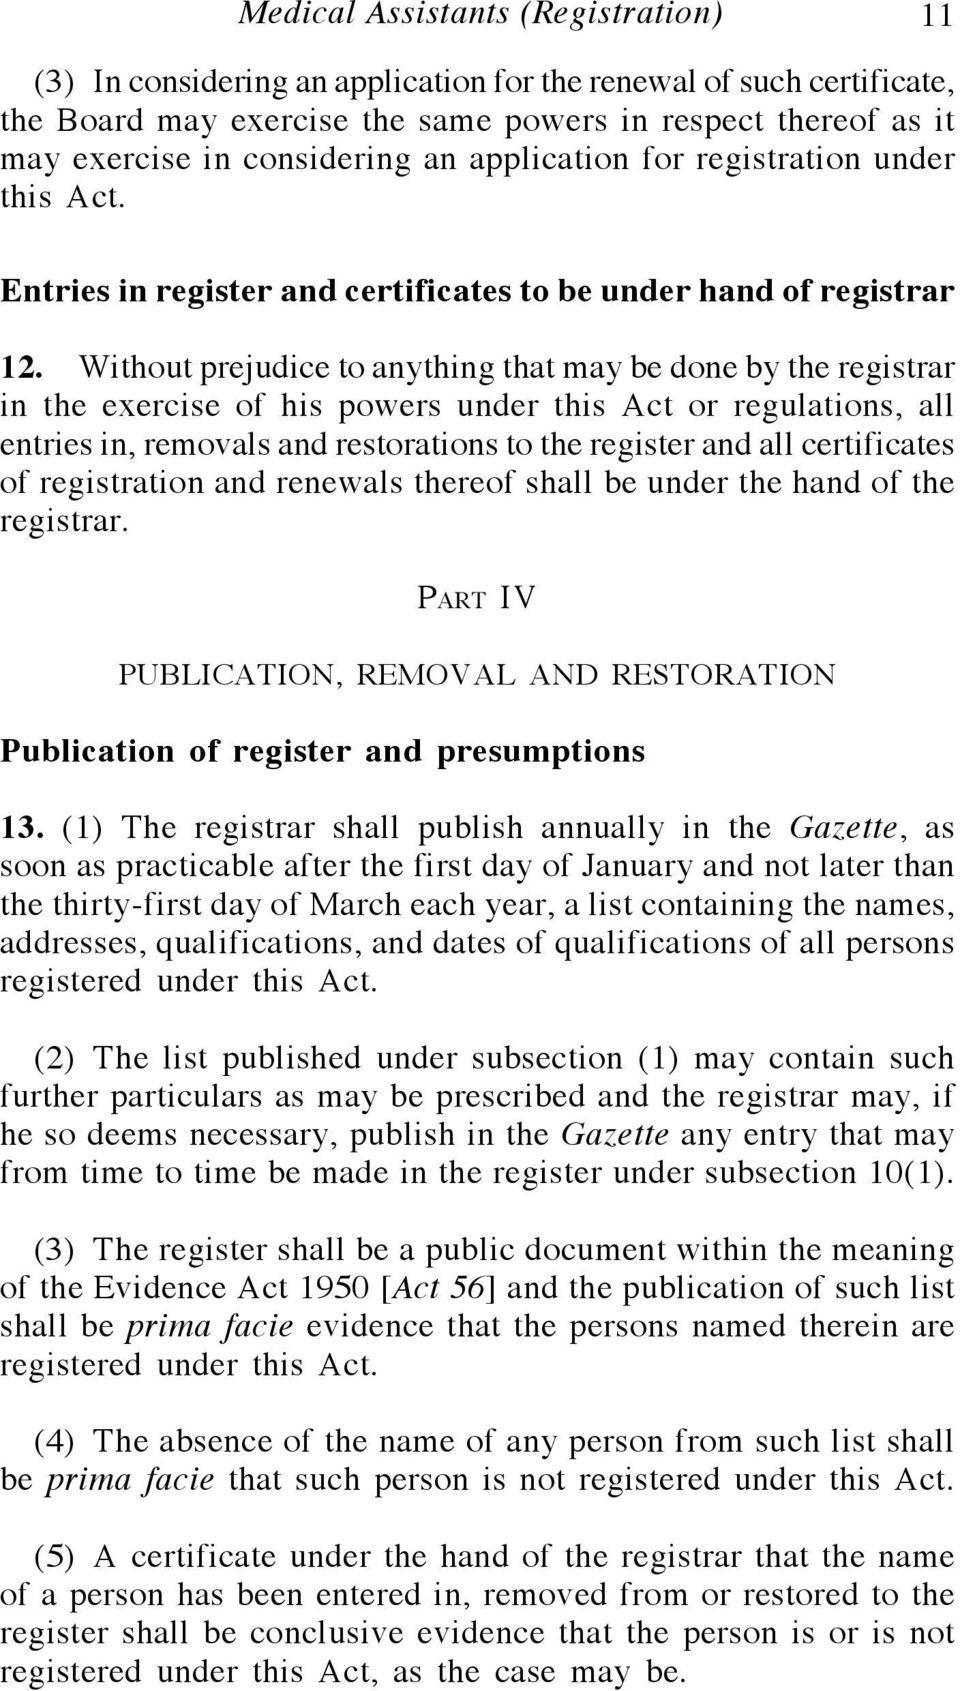 Without prejudice to anything that may be done by the registrar in the exercise of his powers under this Act or regulations, all entries in, removals and restorations to the register and all